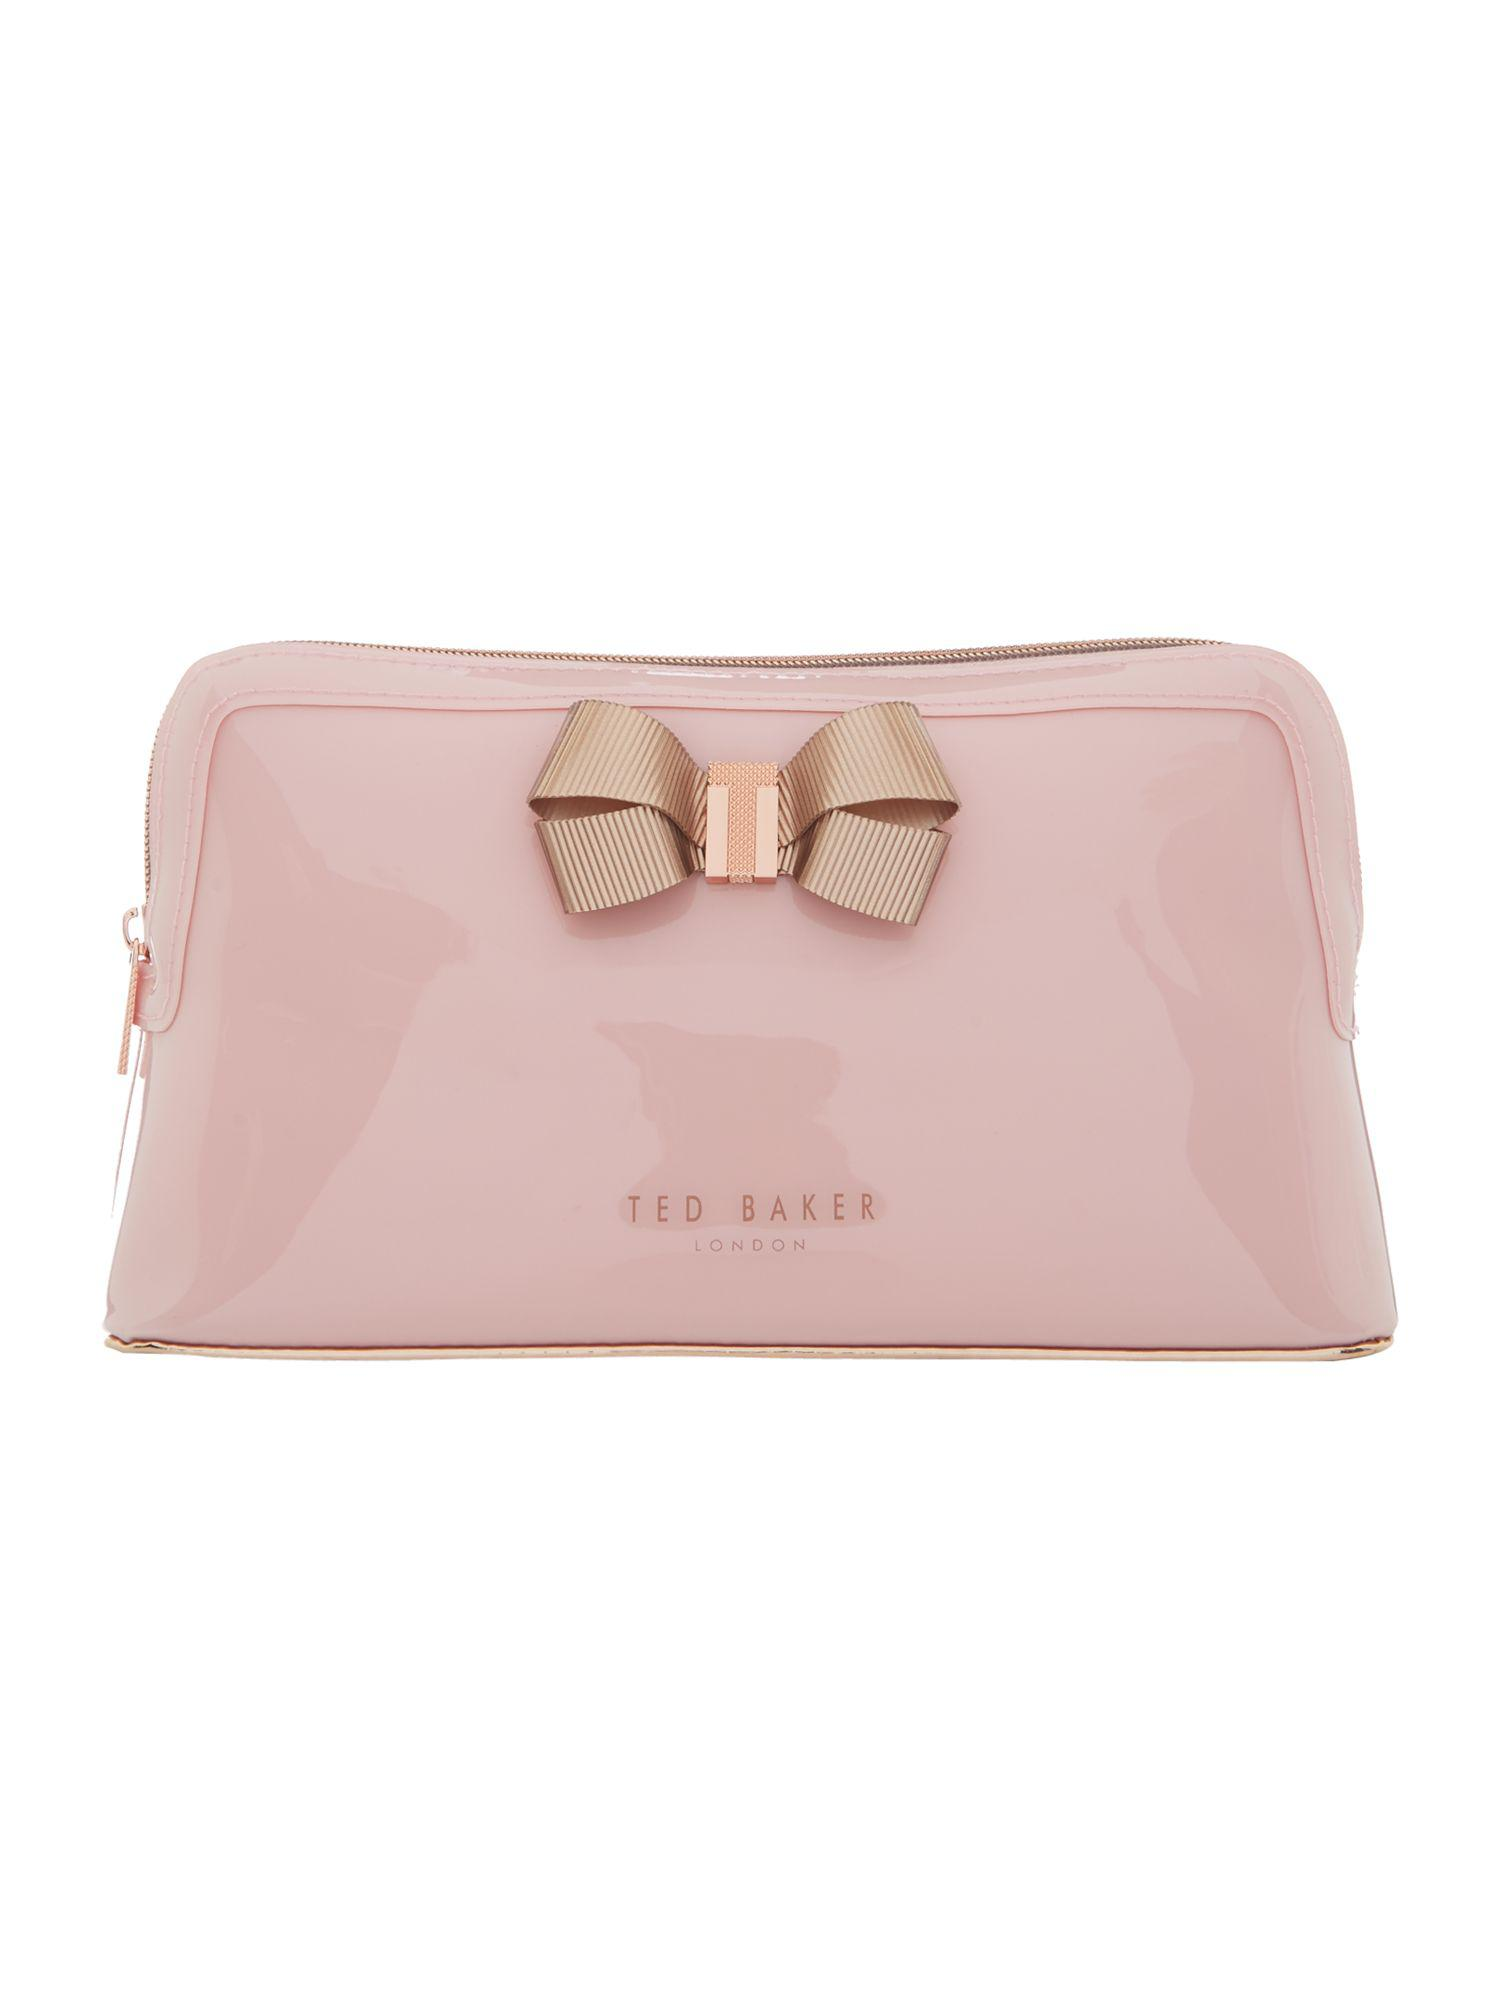 Knot Bow Leather Makeup Bag Ted Baker zAZ9Ih8X8r